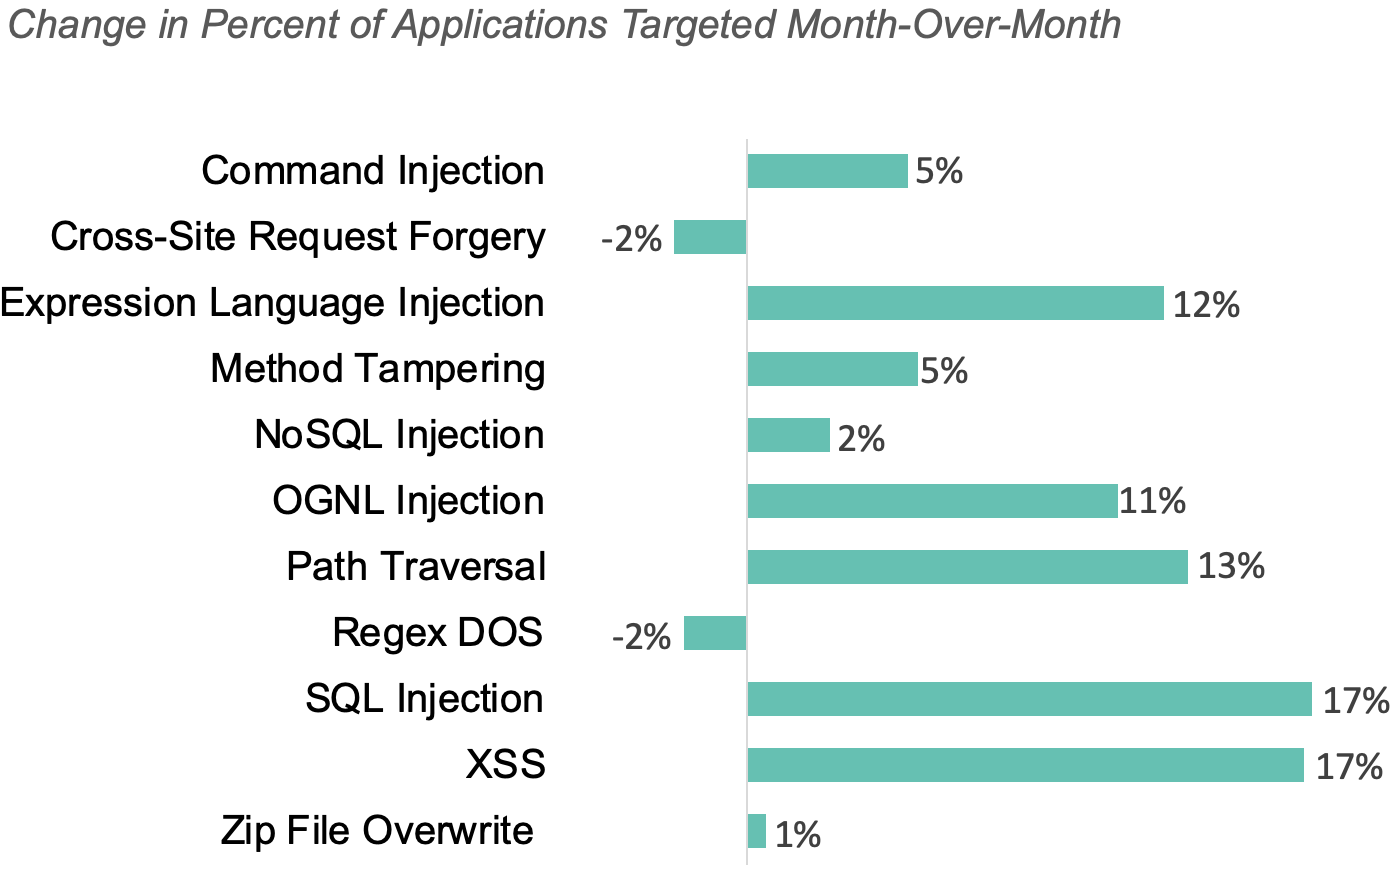 Applications Targeted by Attack Vector